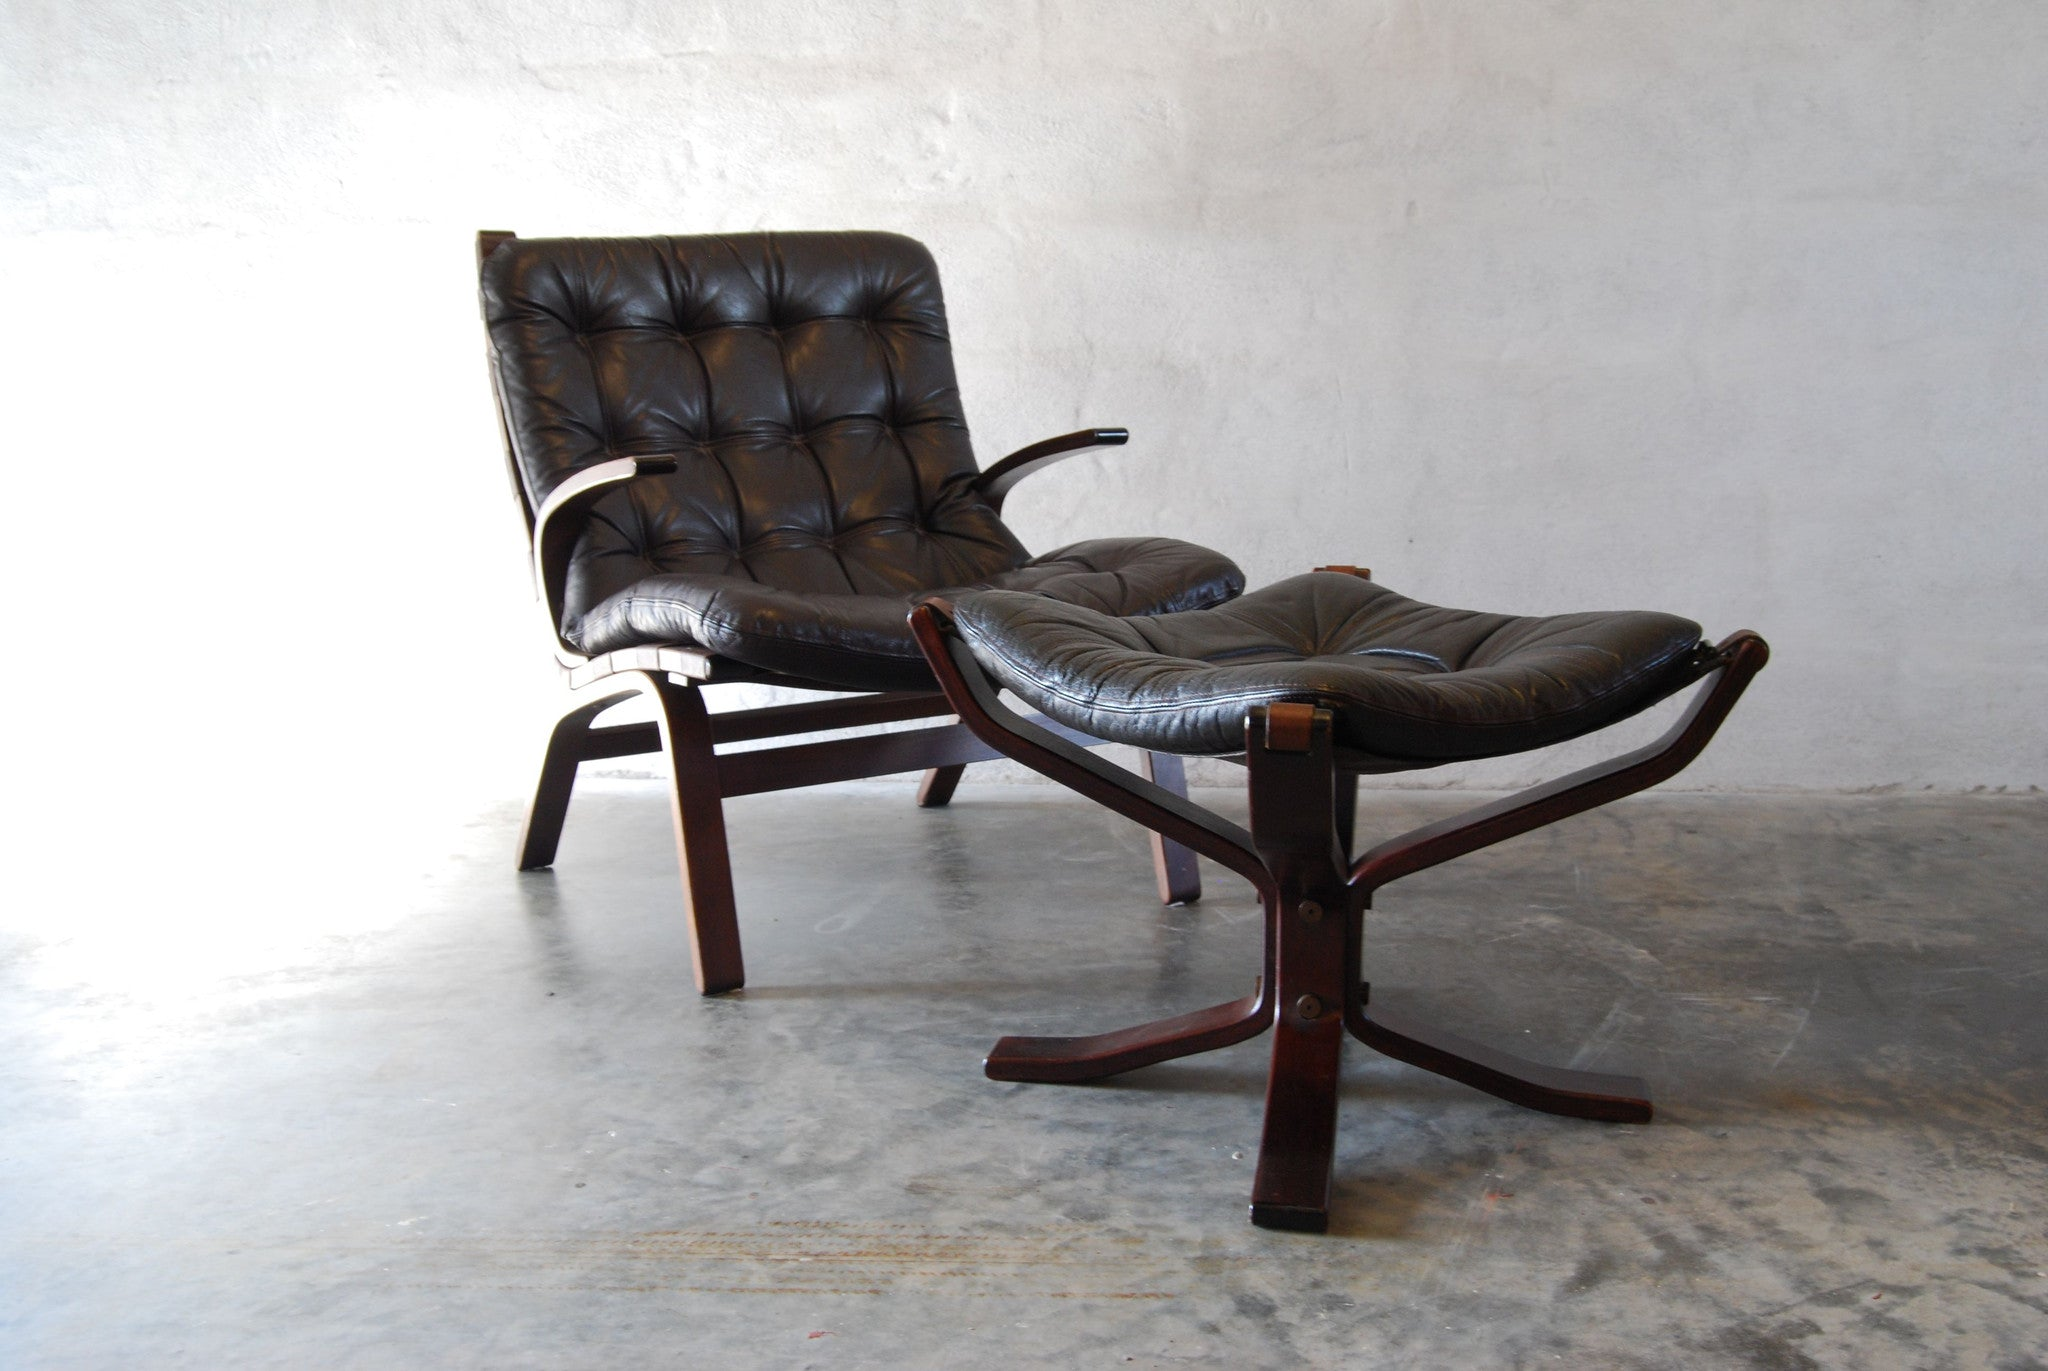 Chase & Sorensen Occasional chair with foot stool